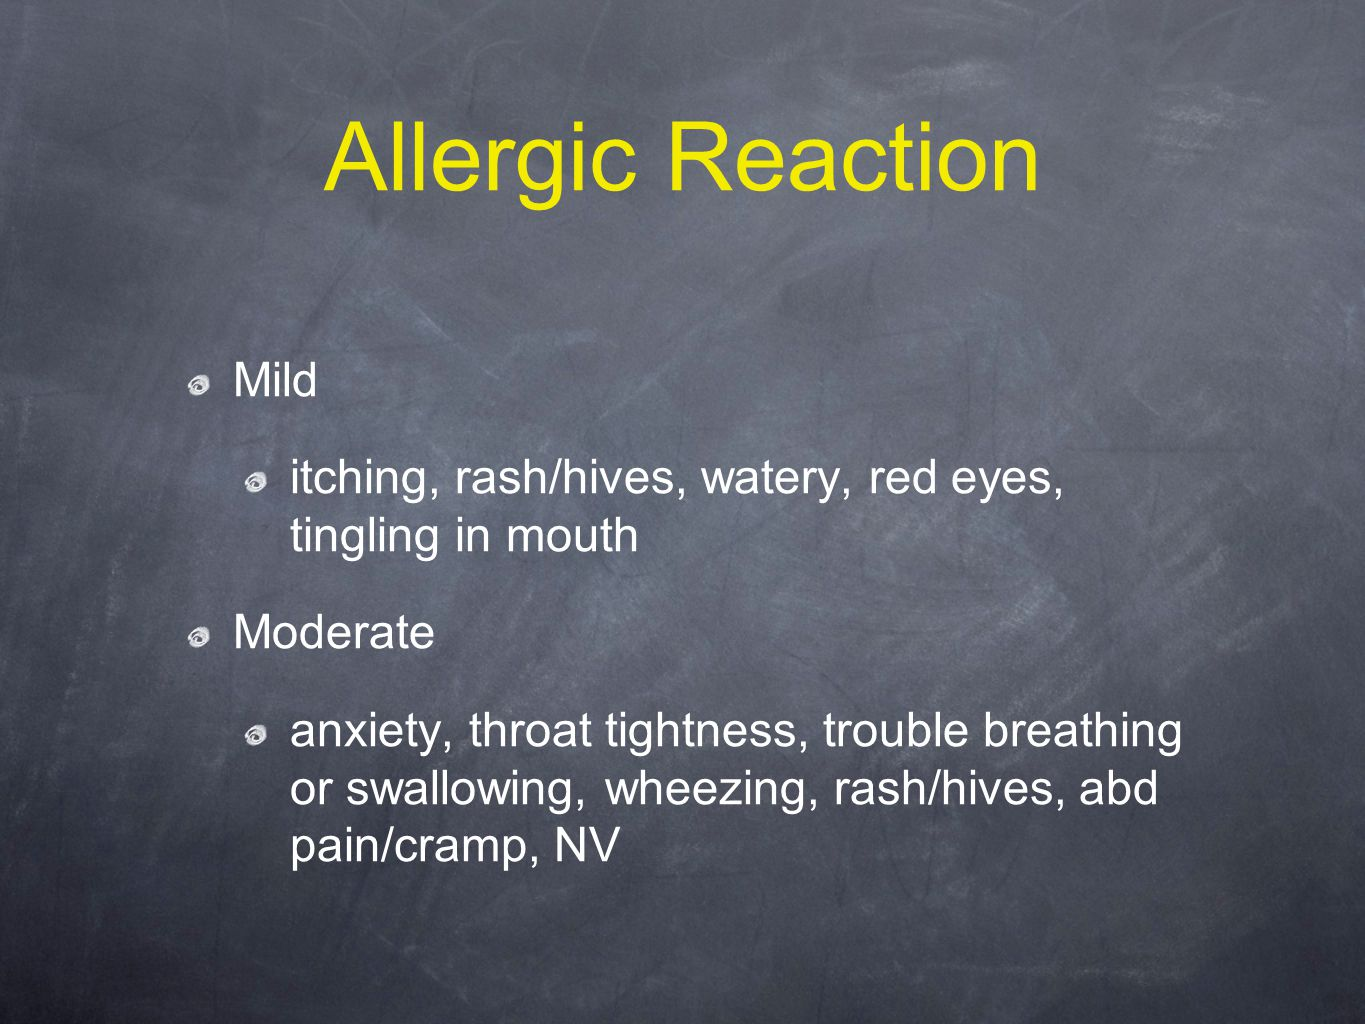 Allergic Reaction Mild itching, rash/hives, watery, red eyes, tingling in mouth Moderate anxiety, throat tightness, trouble breathing or swallowing, wheezing, rash/hives, abd pain/cramp, NV